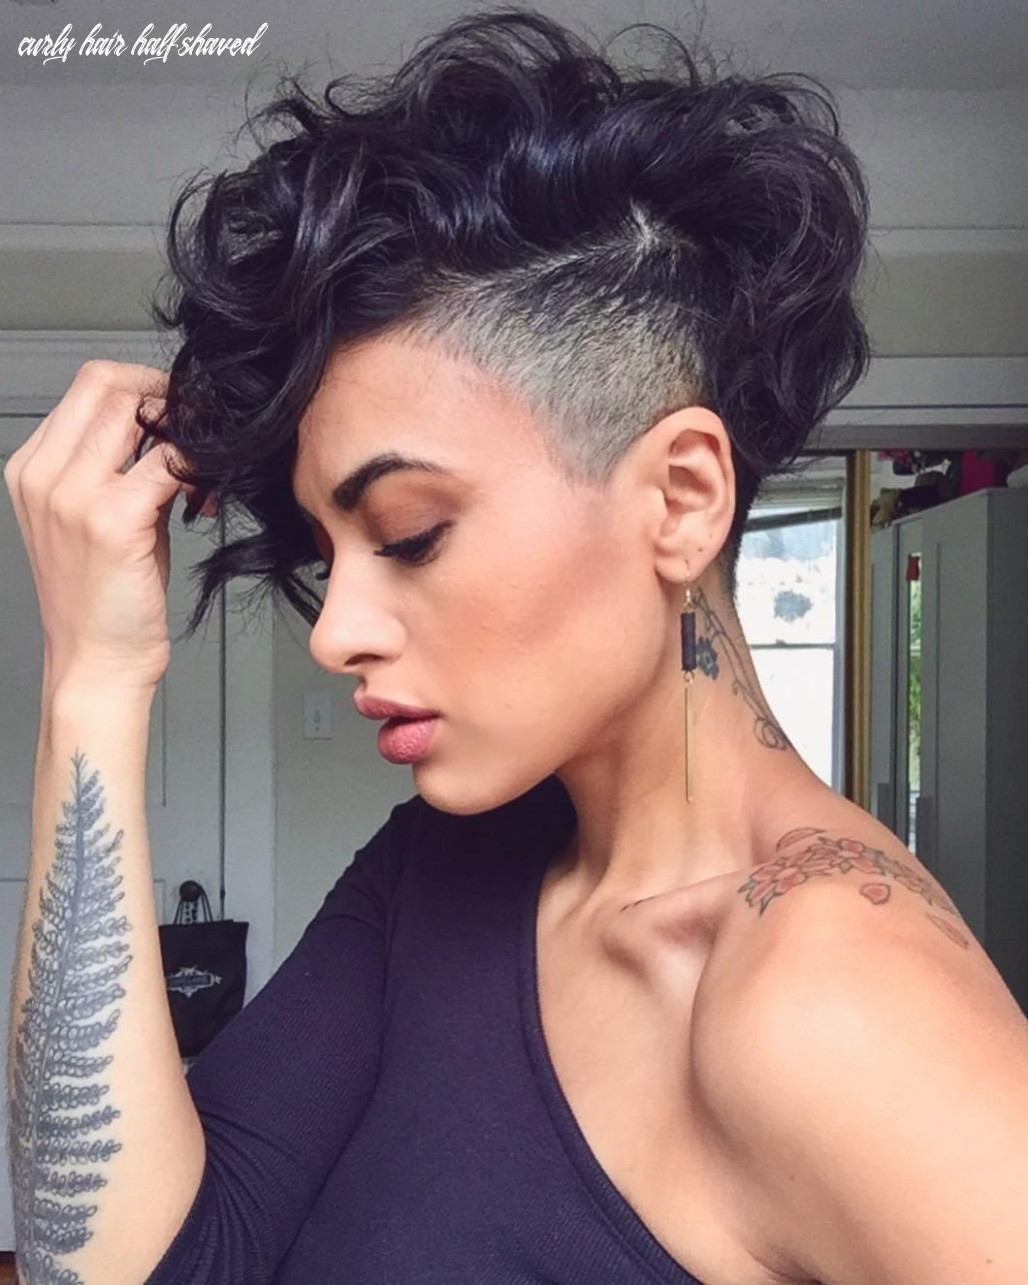 12 bold shaved hairstyles for women | shaved hair designs curly hair half shaved